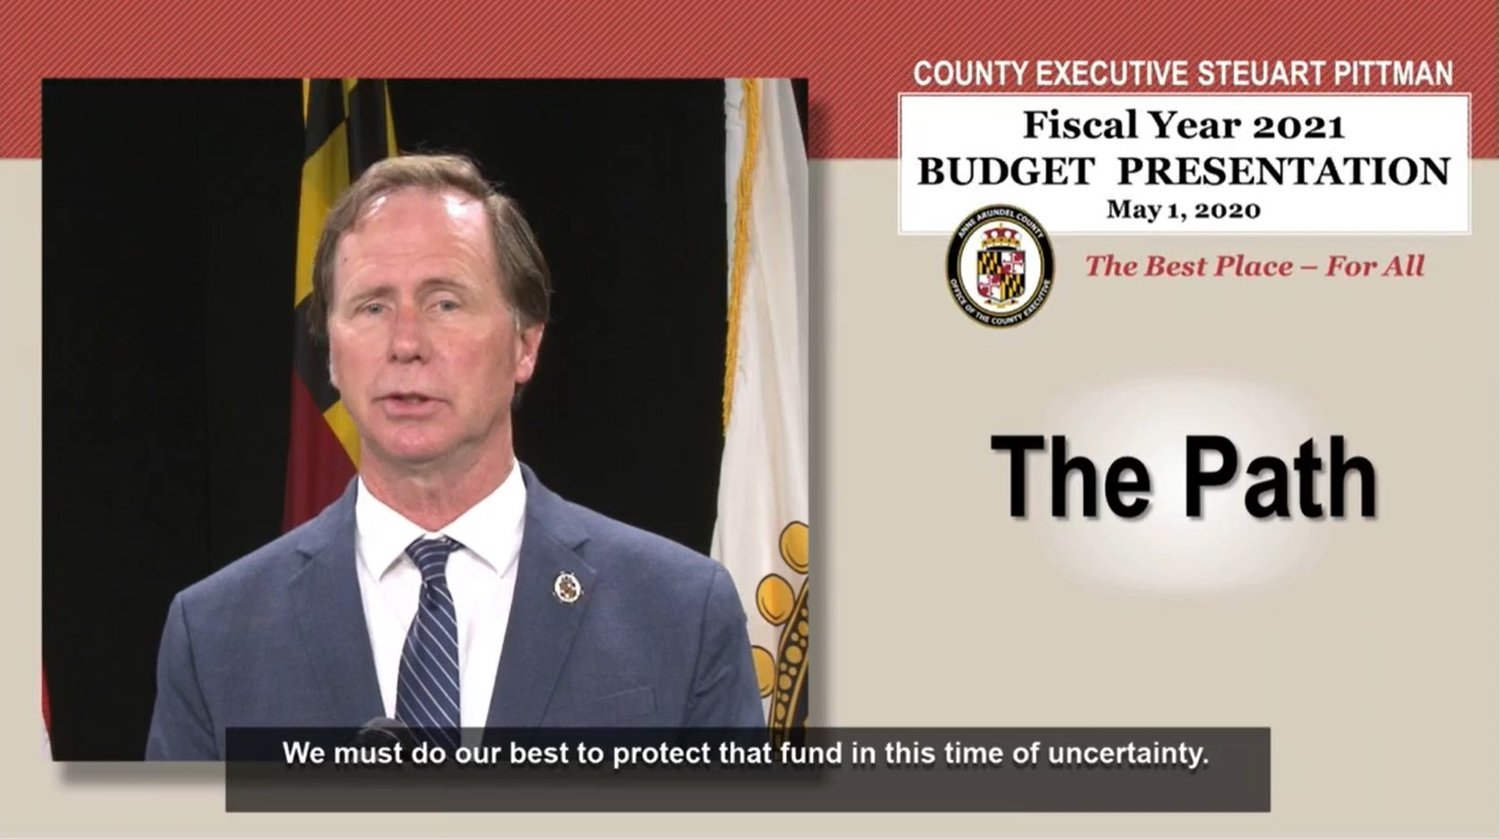 Due to the coronavirus, County Executive Steuart Pittman delivered his budget address via video.